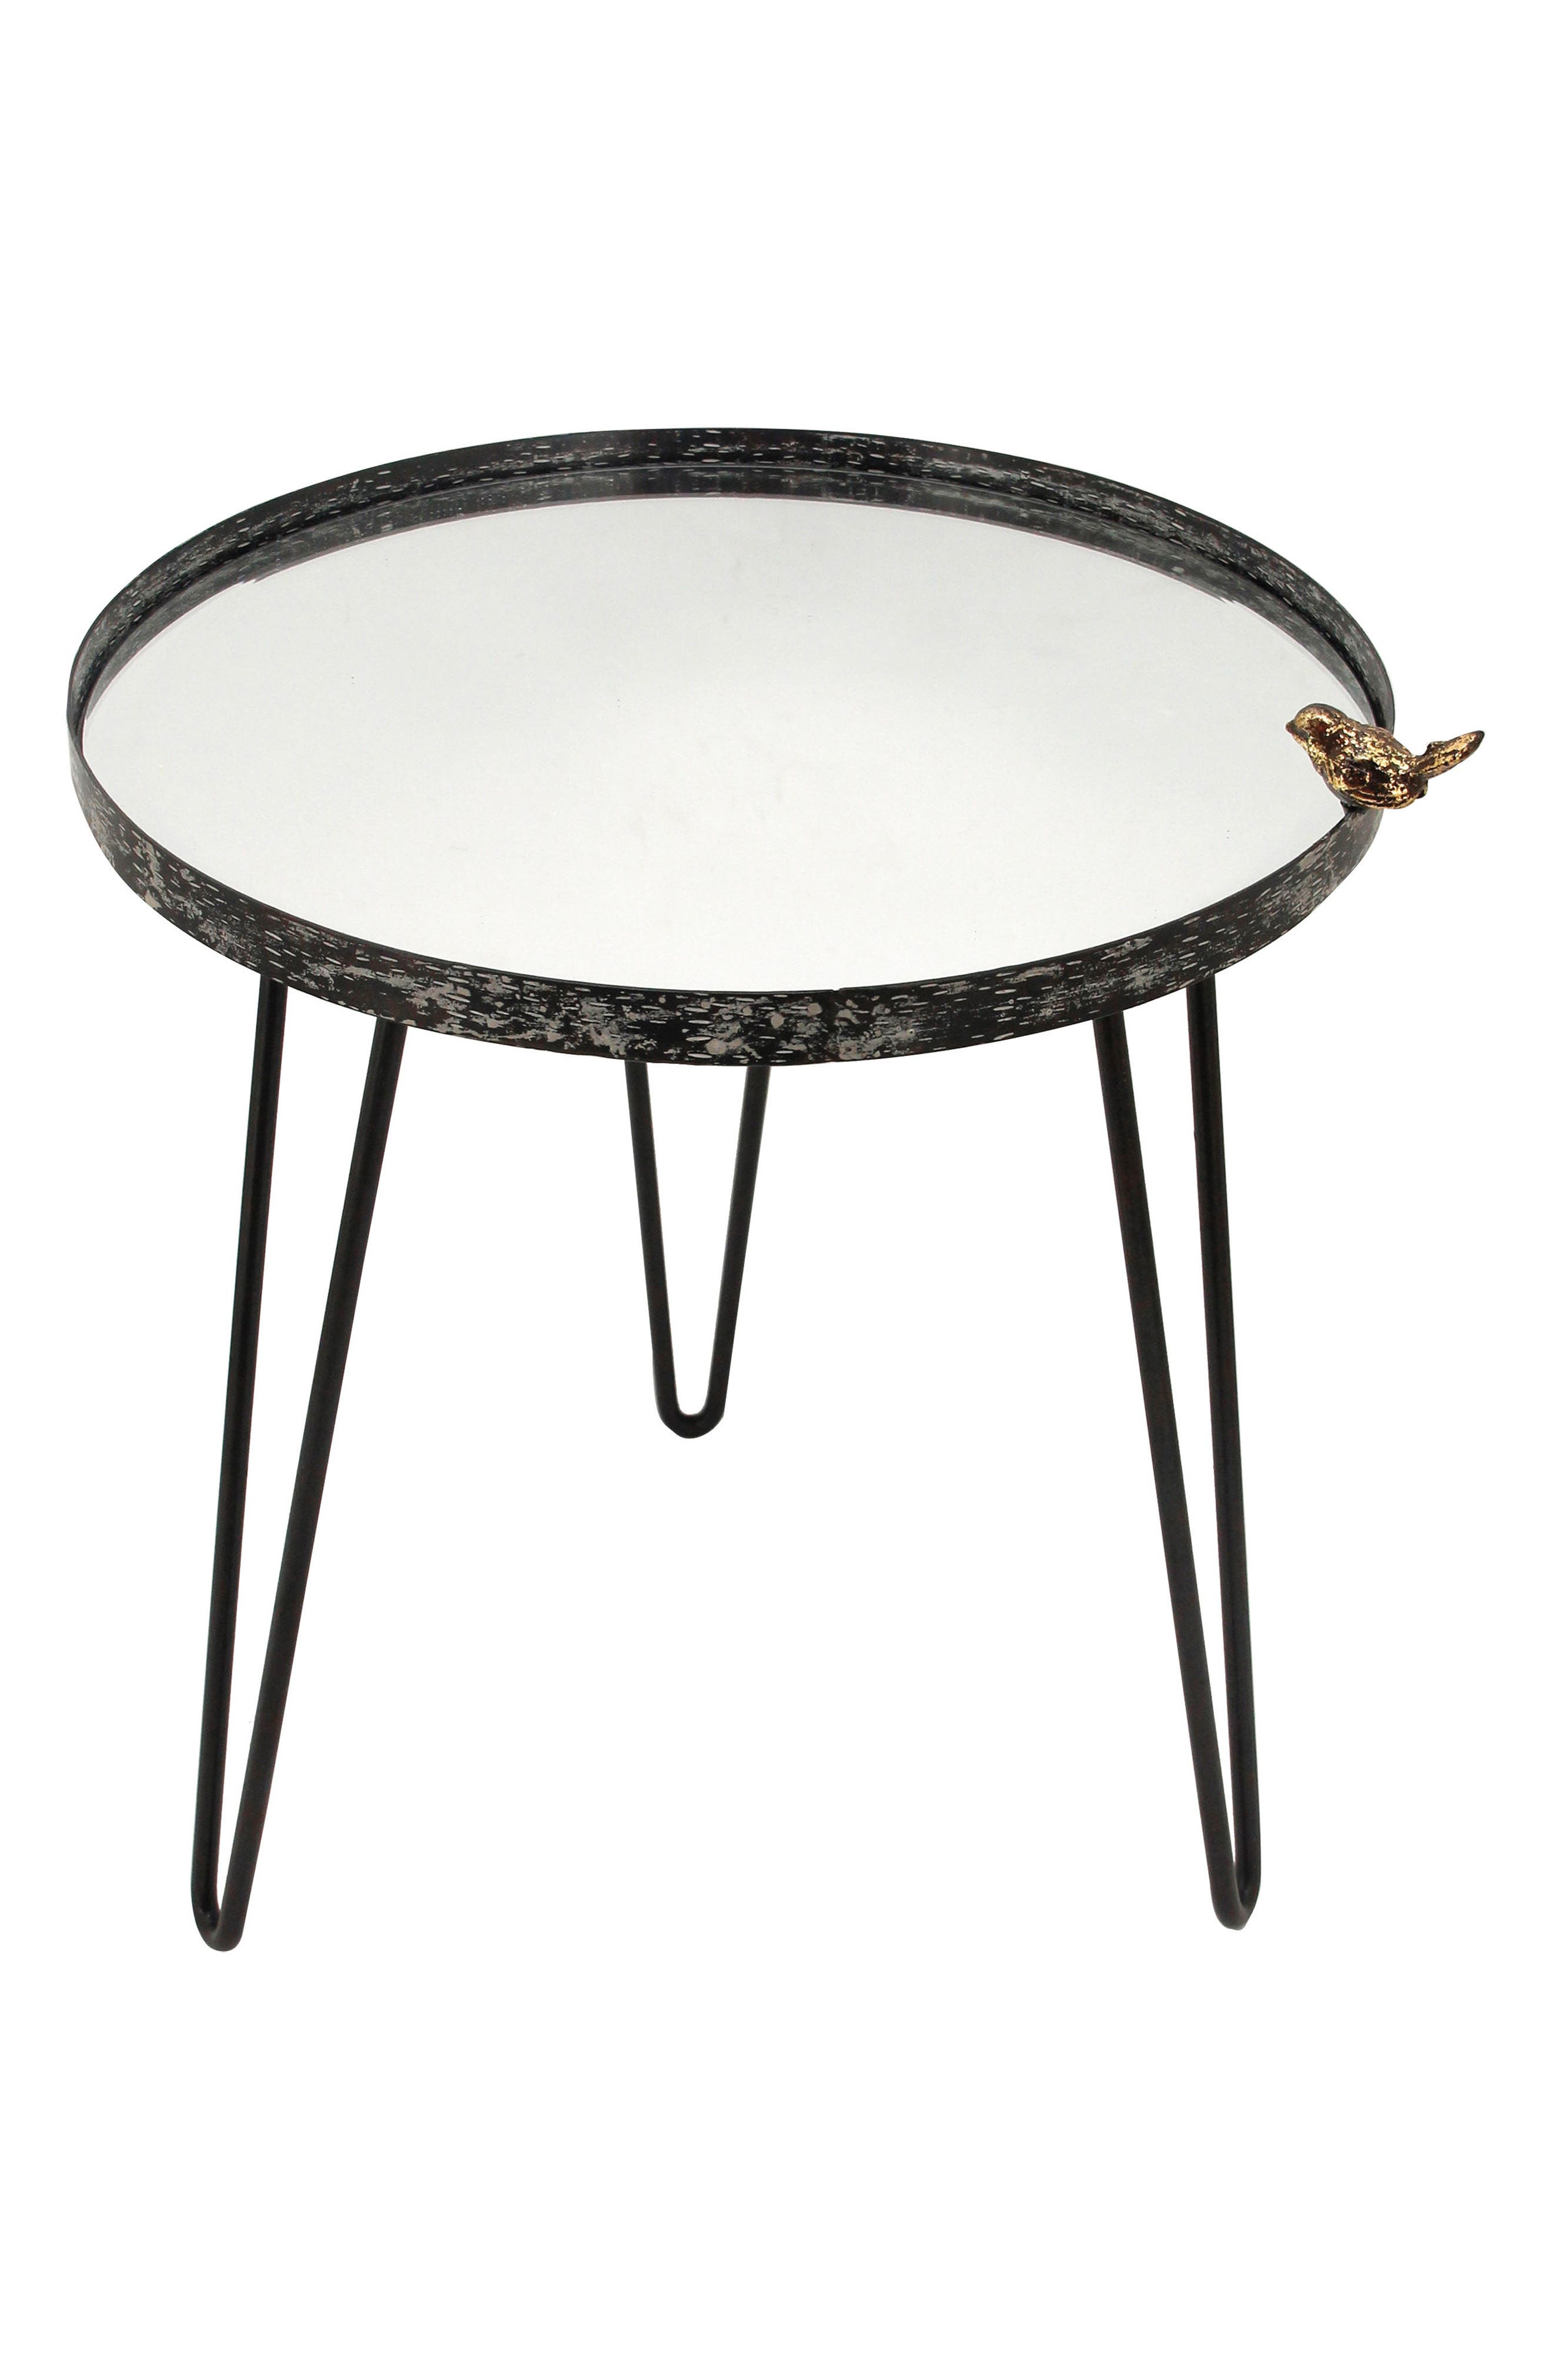 Alternate Image 1 Selected - Foreside Bird Mirror Side Table